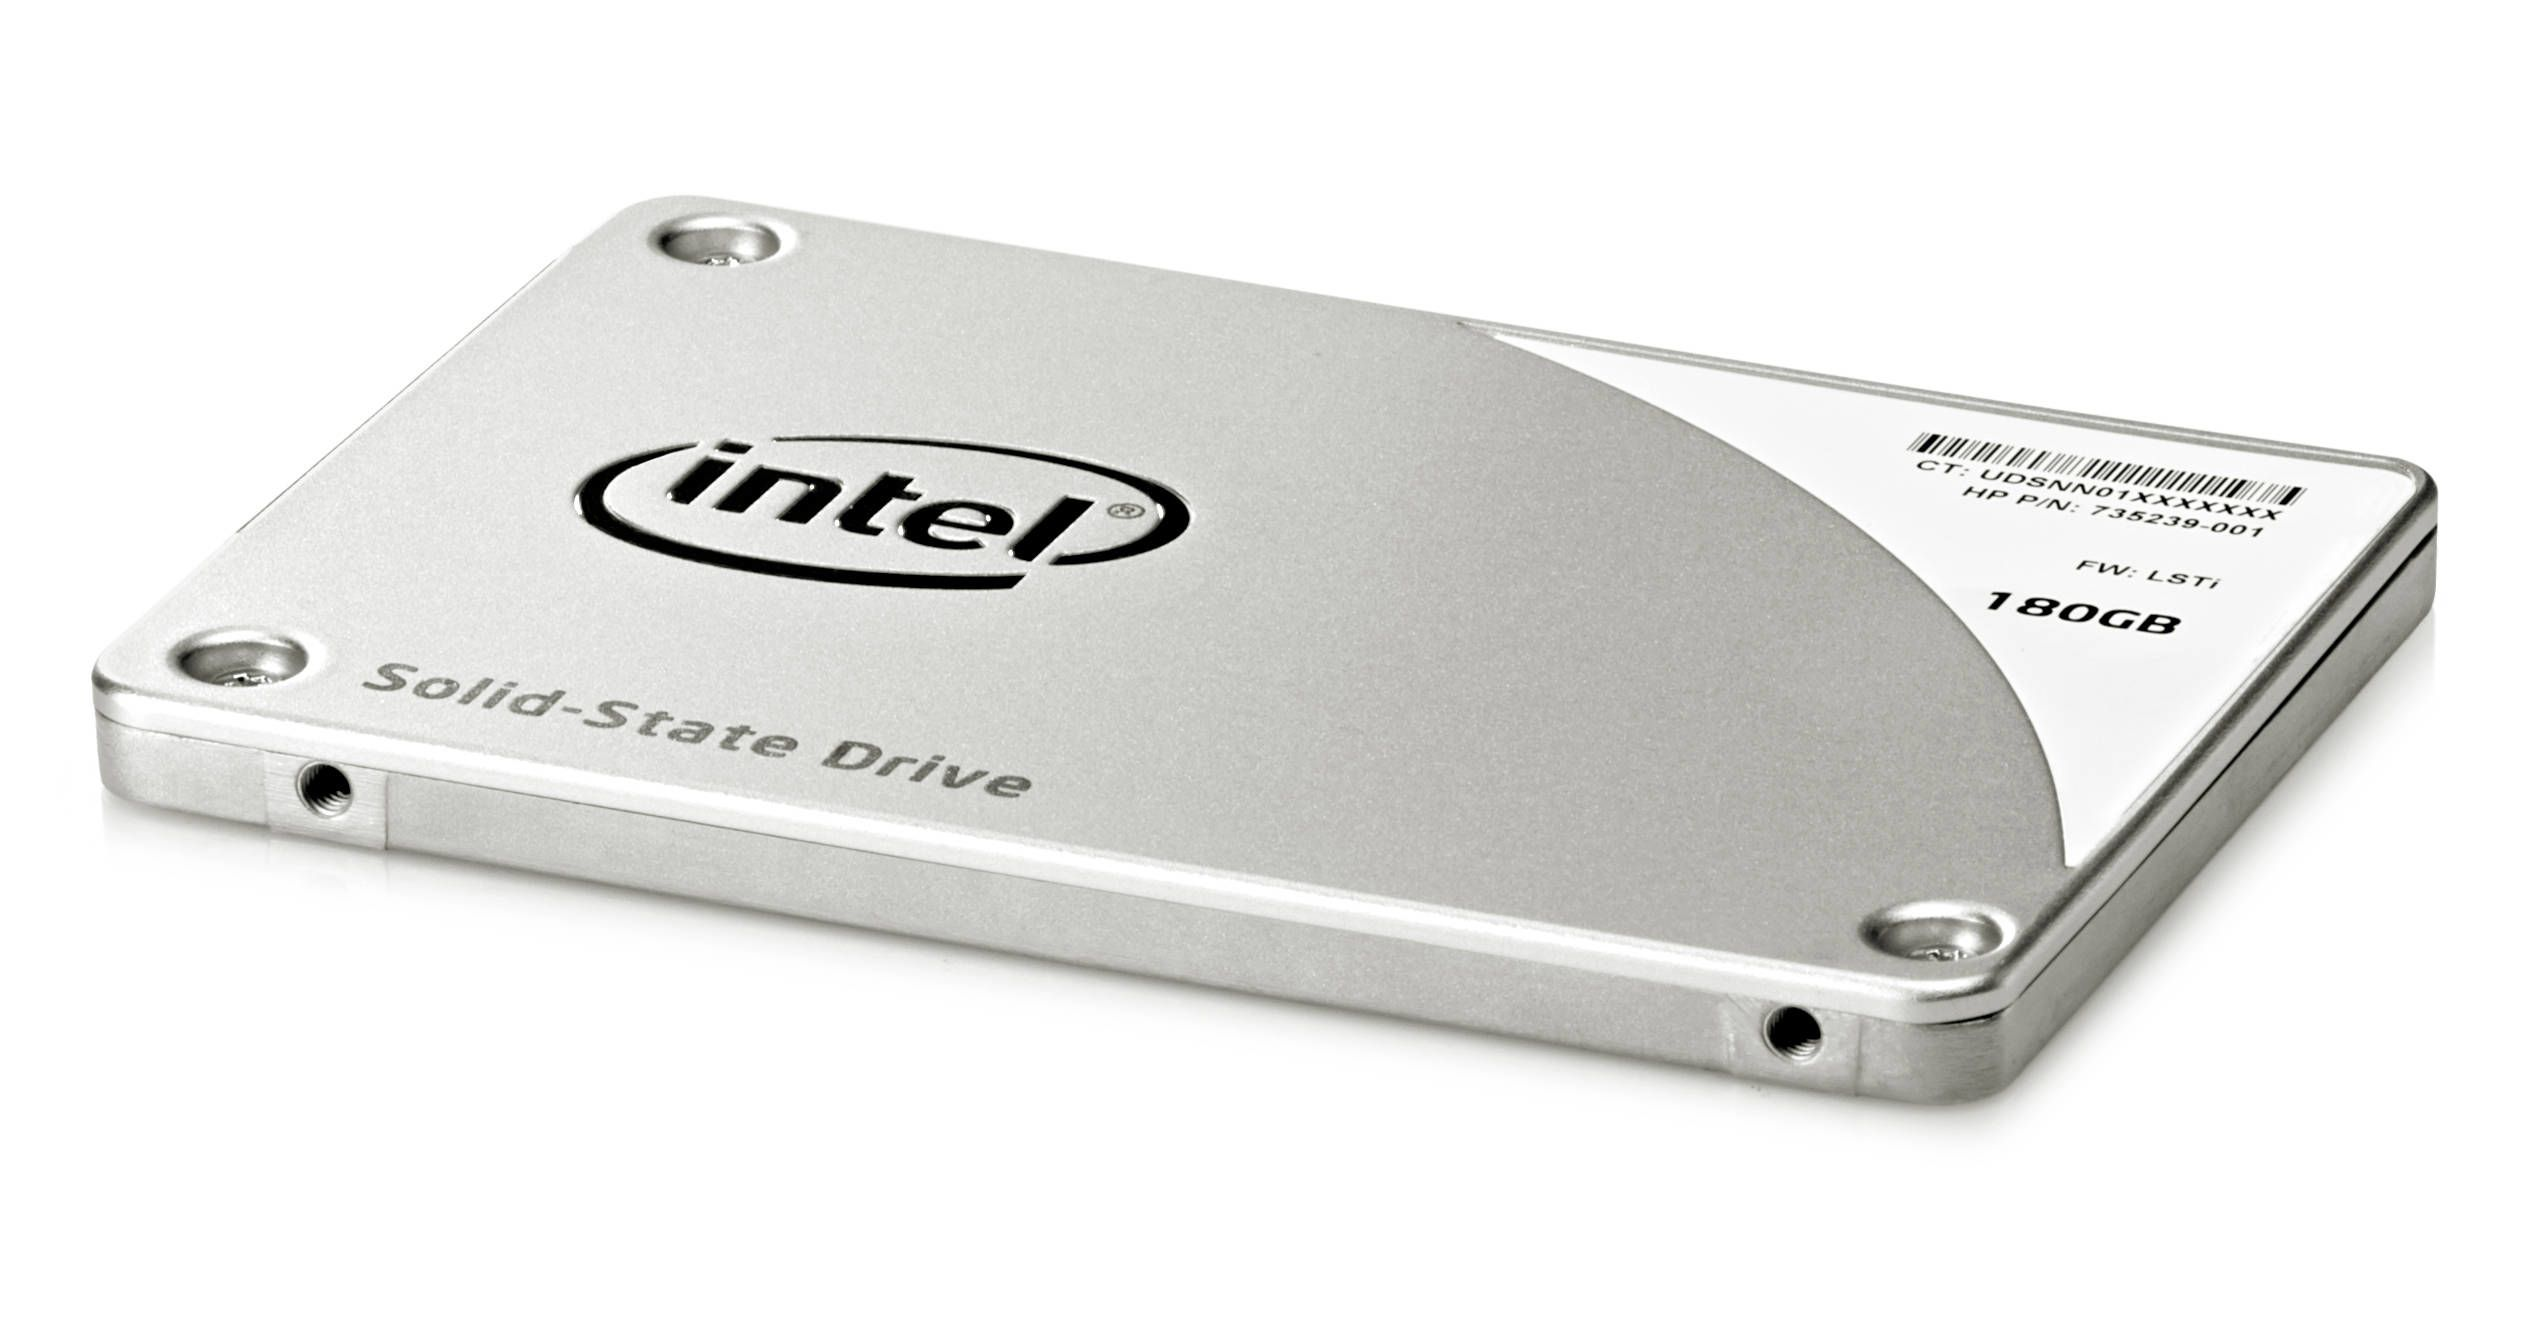 HP Intel Pro 2500 - Solid State Drive - 180 GB - intern - SATA 3Gb/s - for EliteDesk 705 G3, 800 G2; EliteOne 705 G2; ProOne 600 G2; Retail System MP9 G2 (P3X90AA)